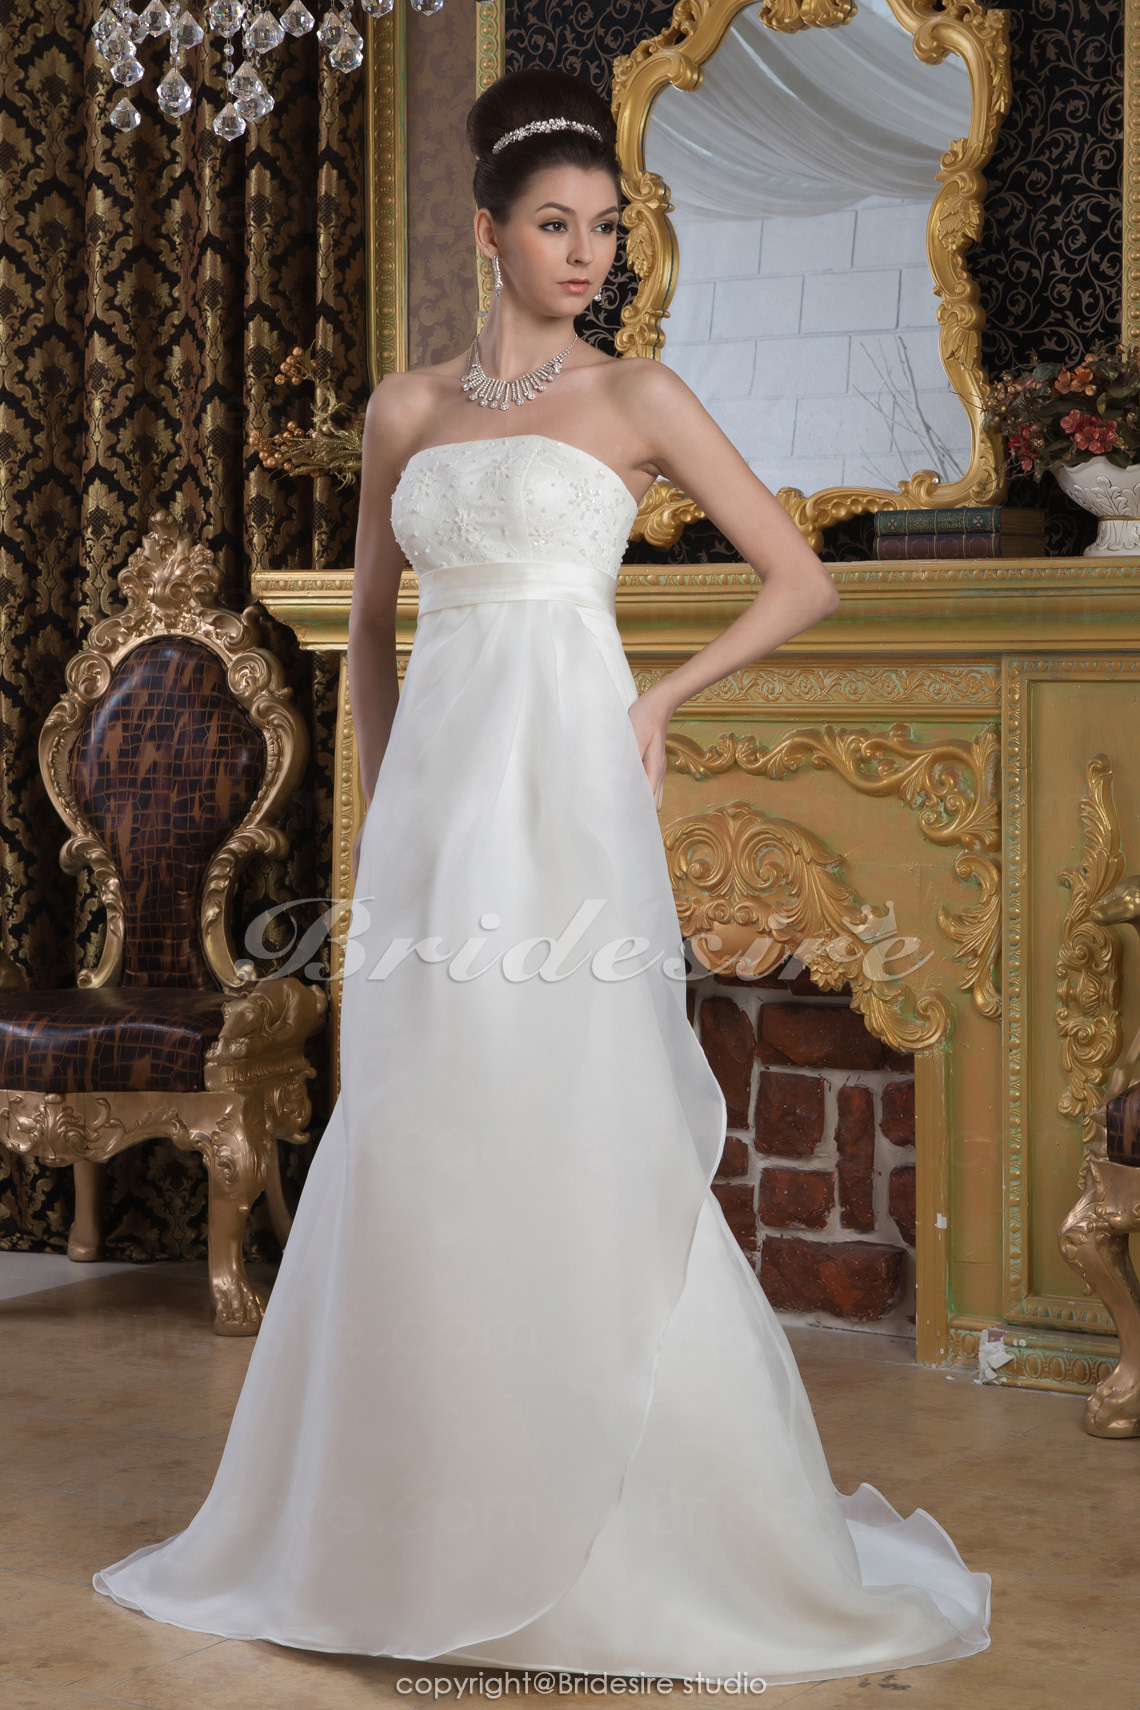 Sheath/Column Strapless Floor-length Sweep Train Sleeveless Sati